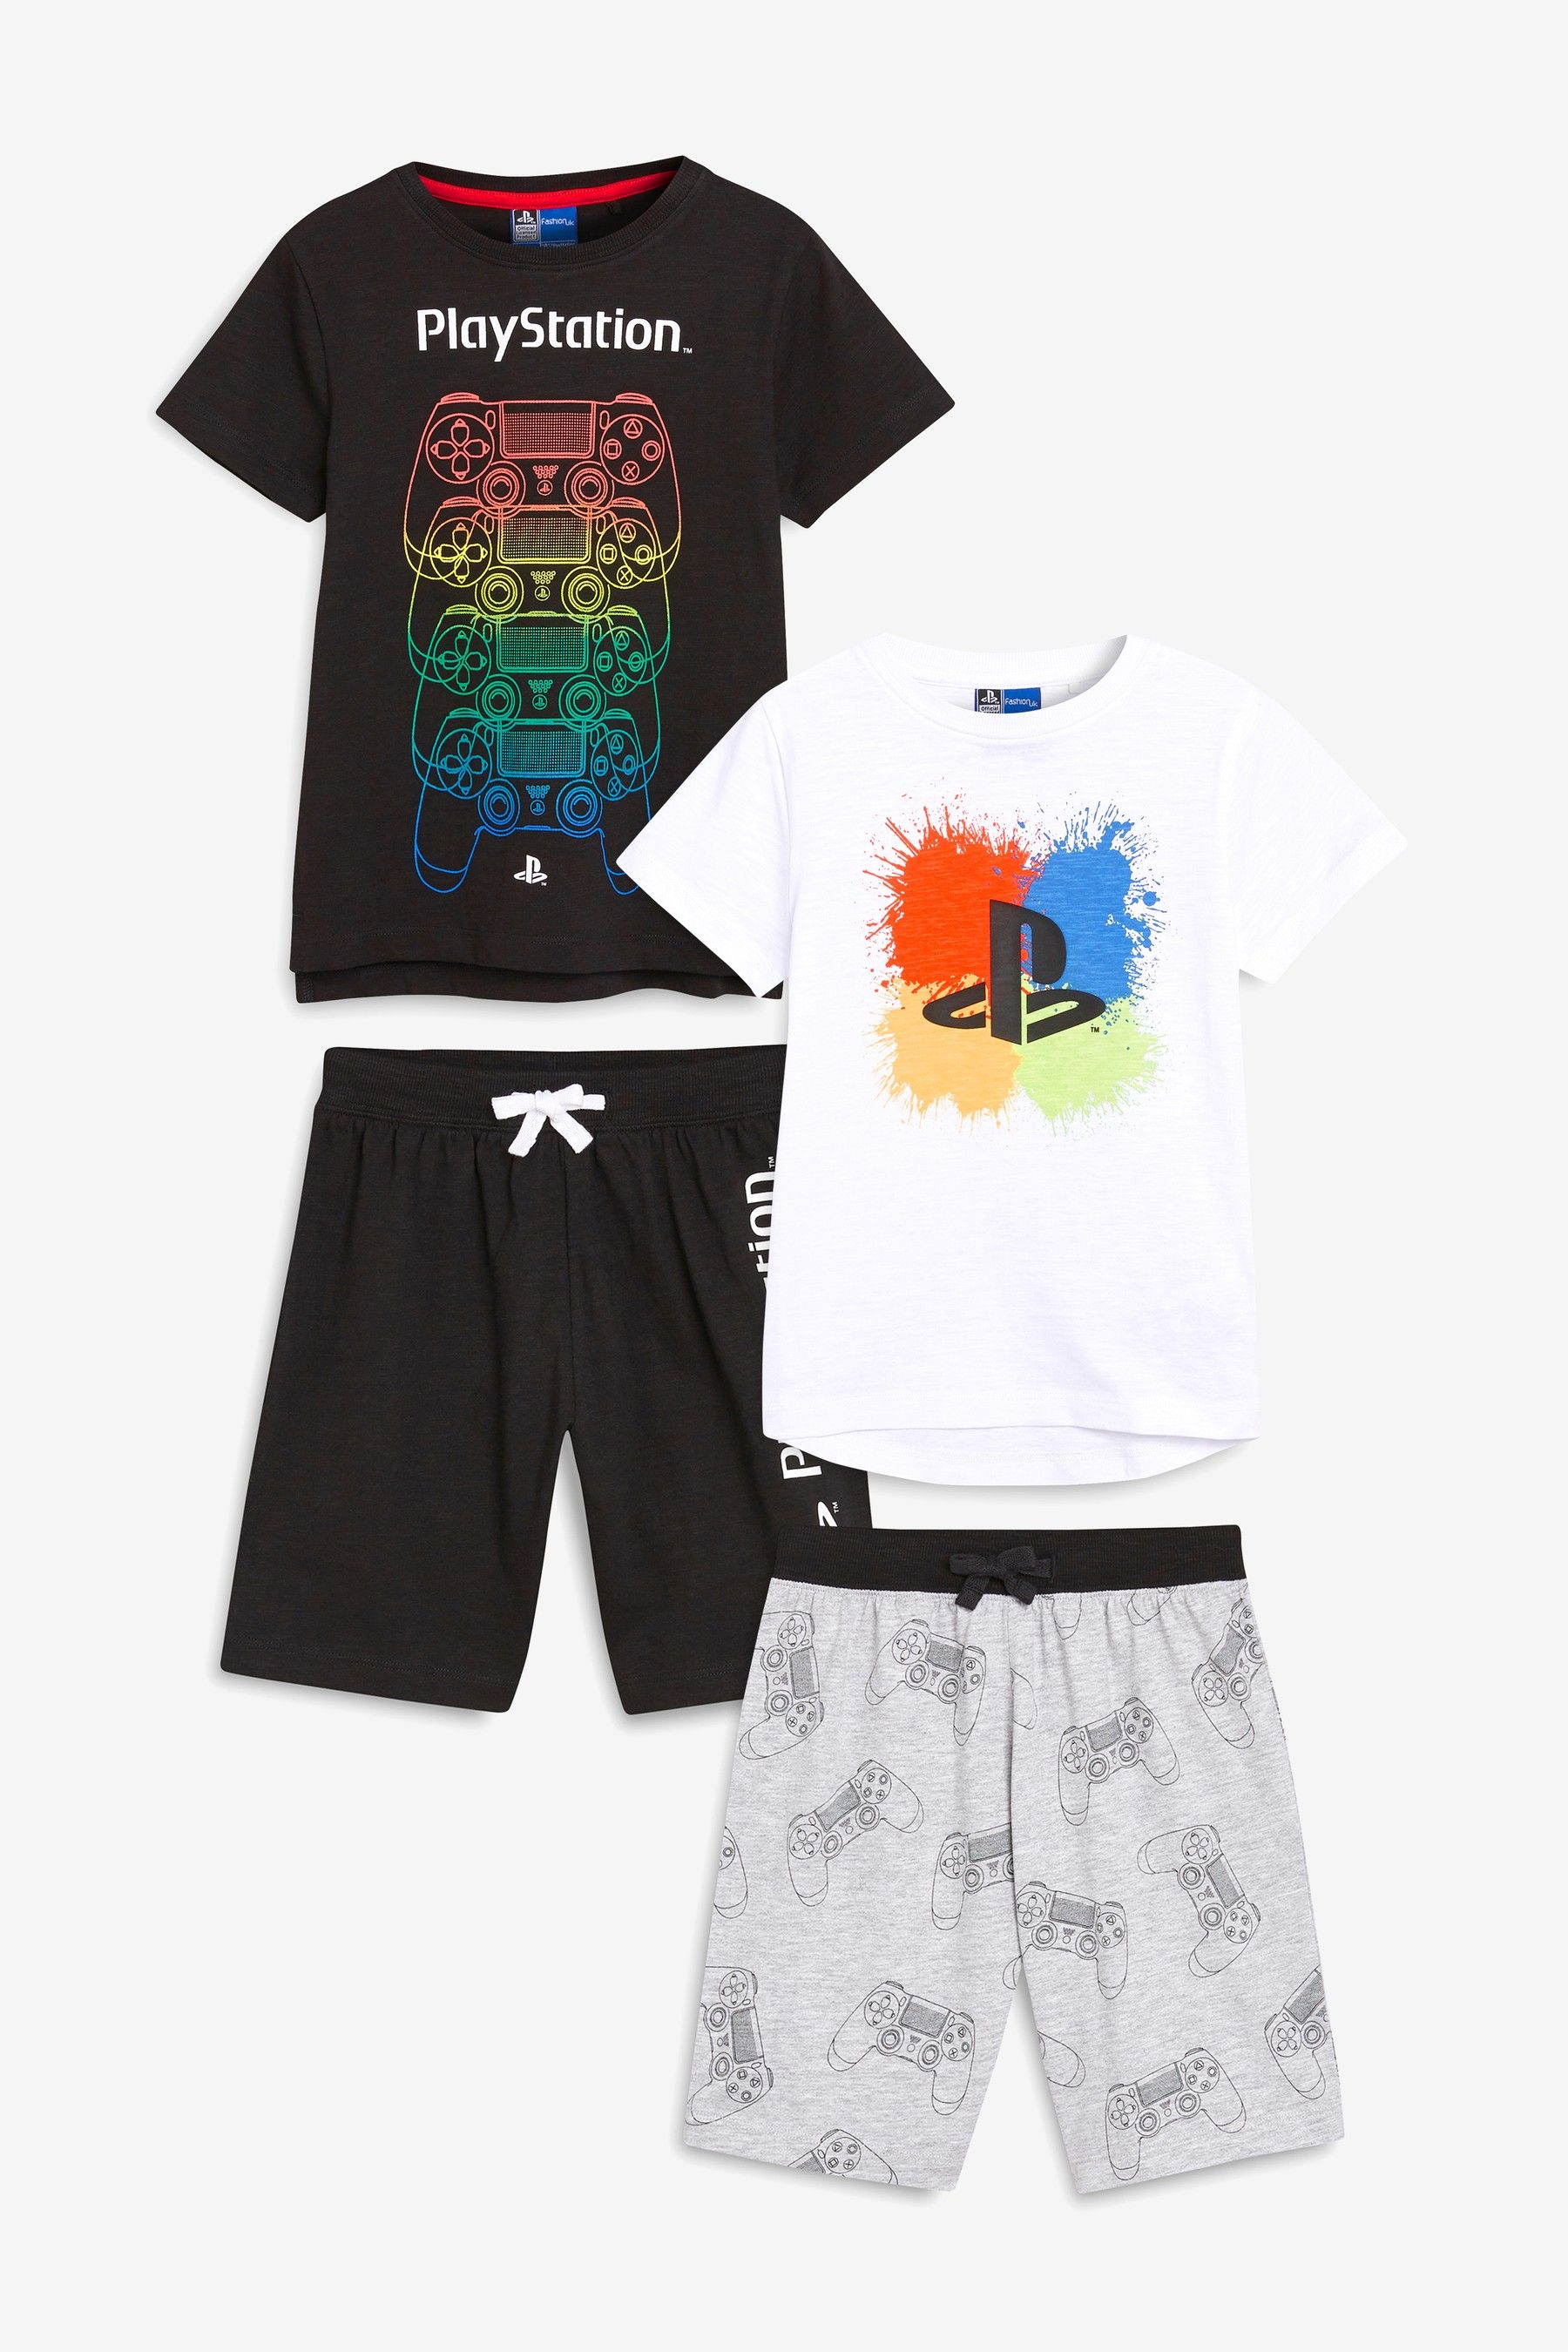 8268fe527c Boys Monochrome PlayStation Pyjamas Two Pack (3-16yrs) - Black ...